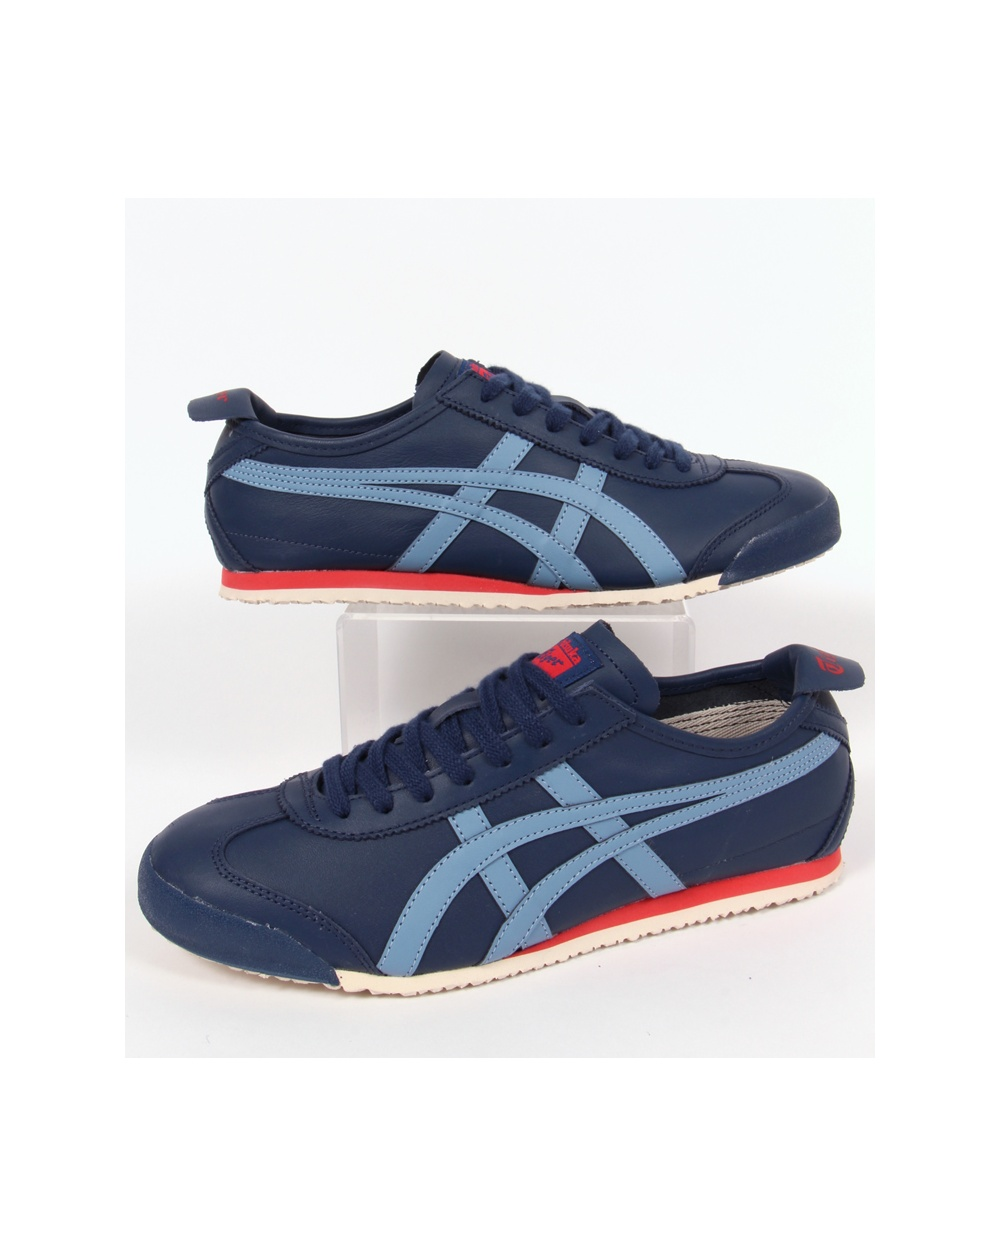 onitsuka tiger mexico 66 trainers poseidon blue vintage blue onitsuka tiger trainers. Black Bedroom Furniture Sets. Home Design Ideas